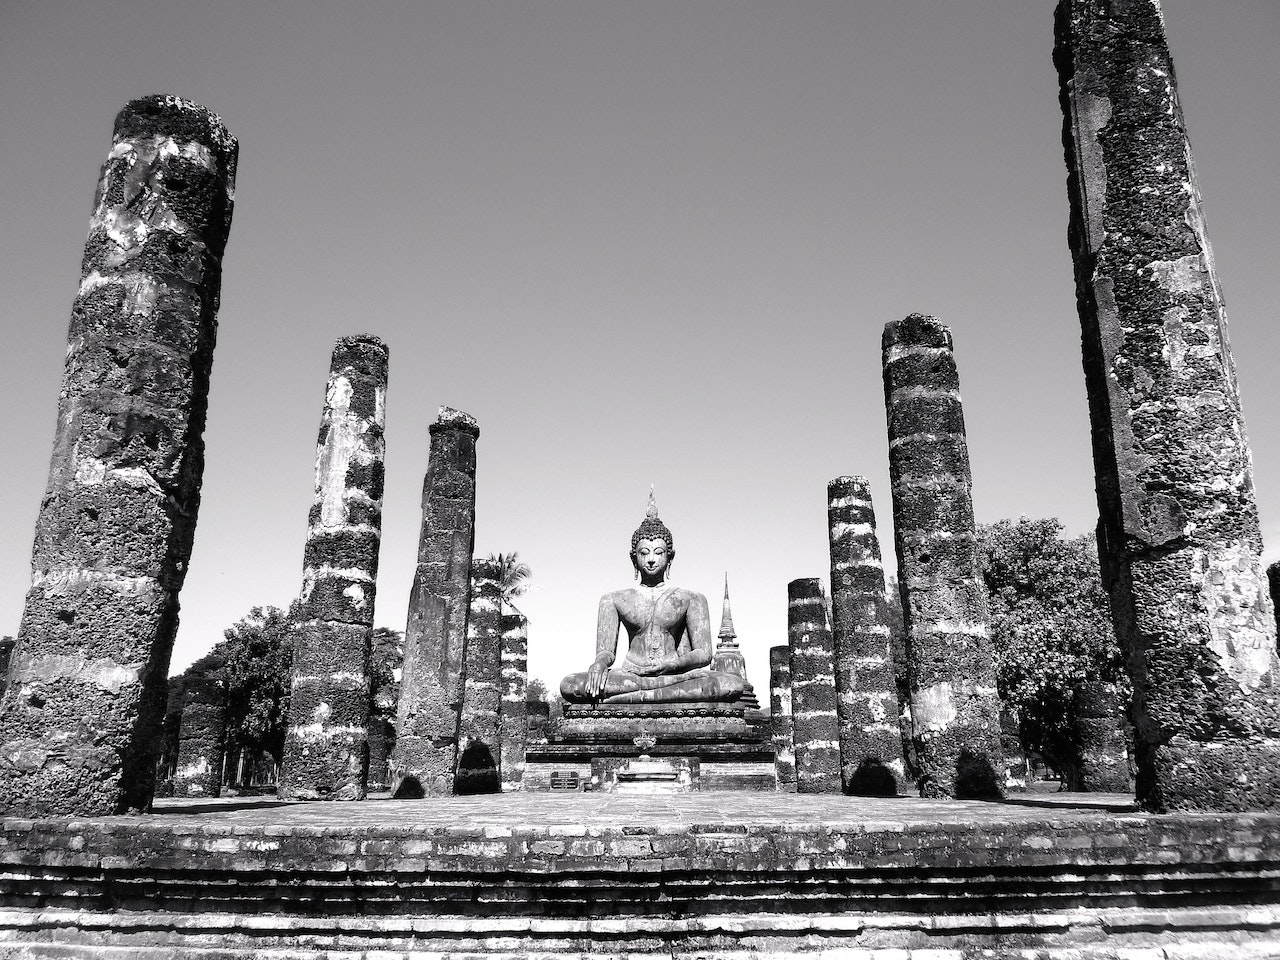 Greyscale picture of a Buddha statue